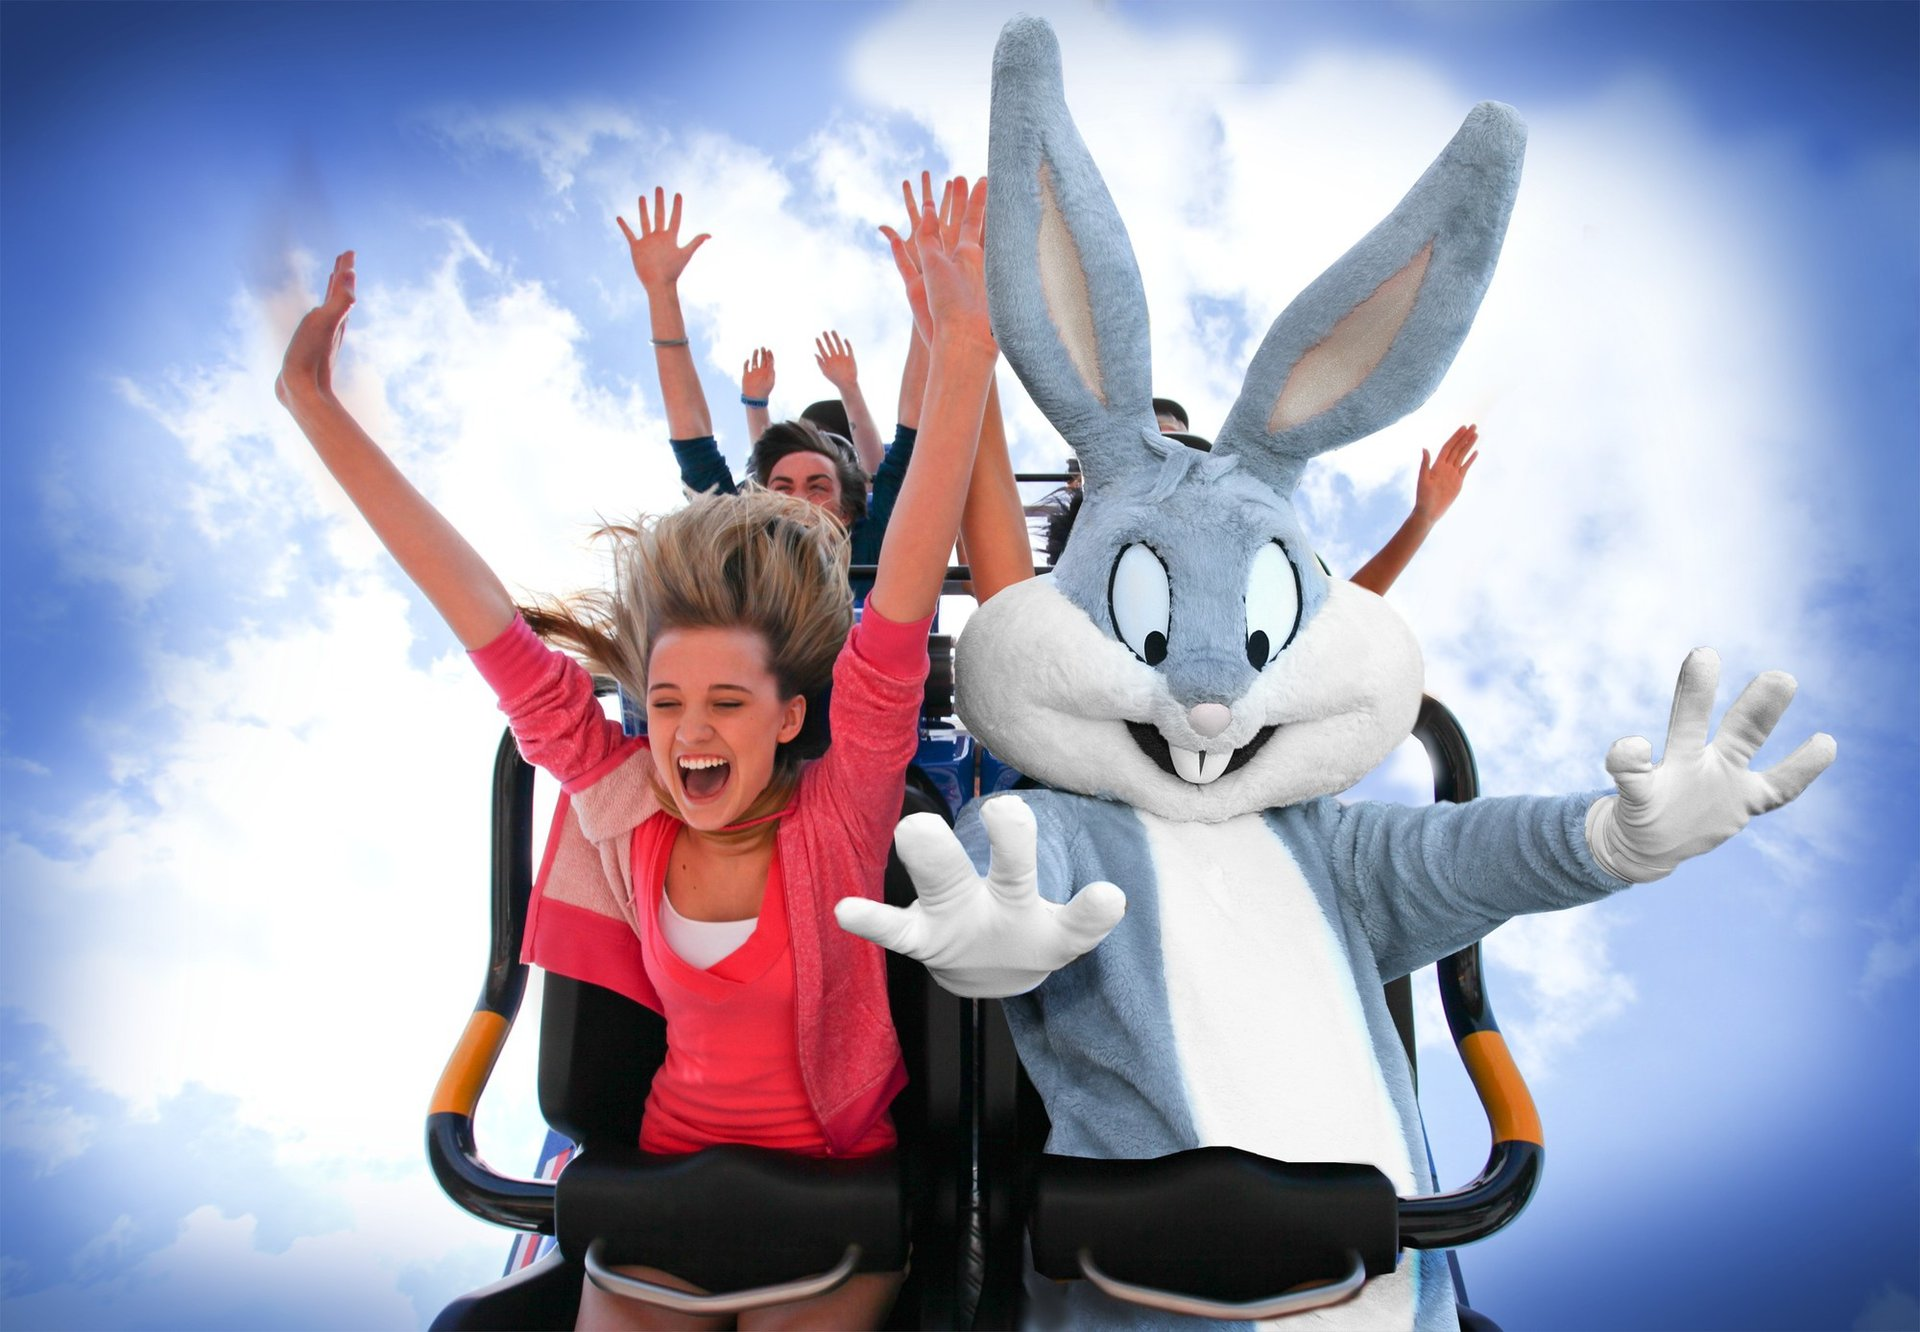 People and characters on a roller coaster with their hands in the air